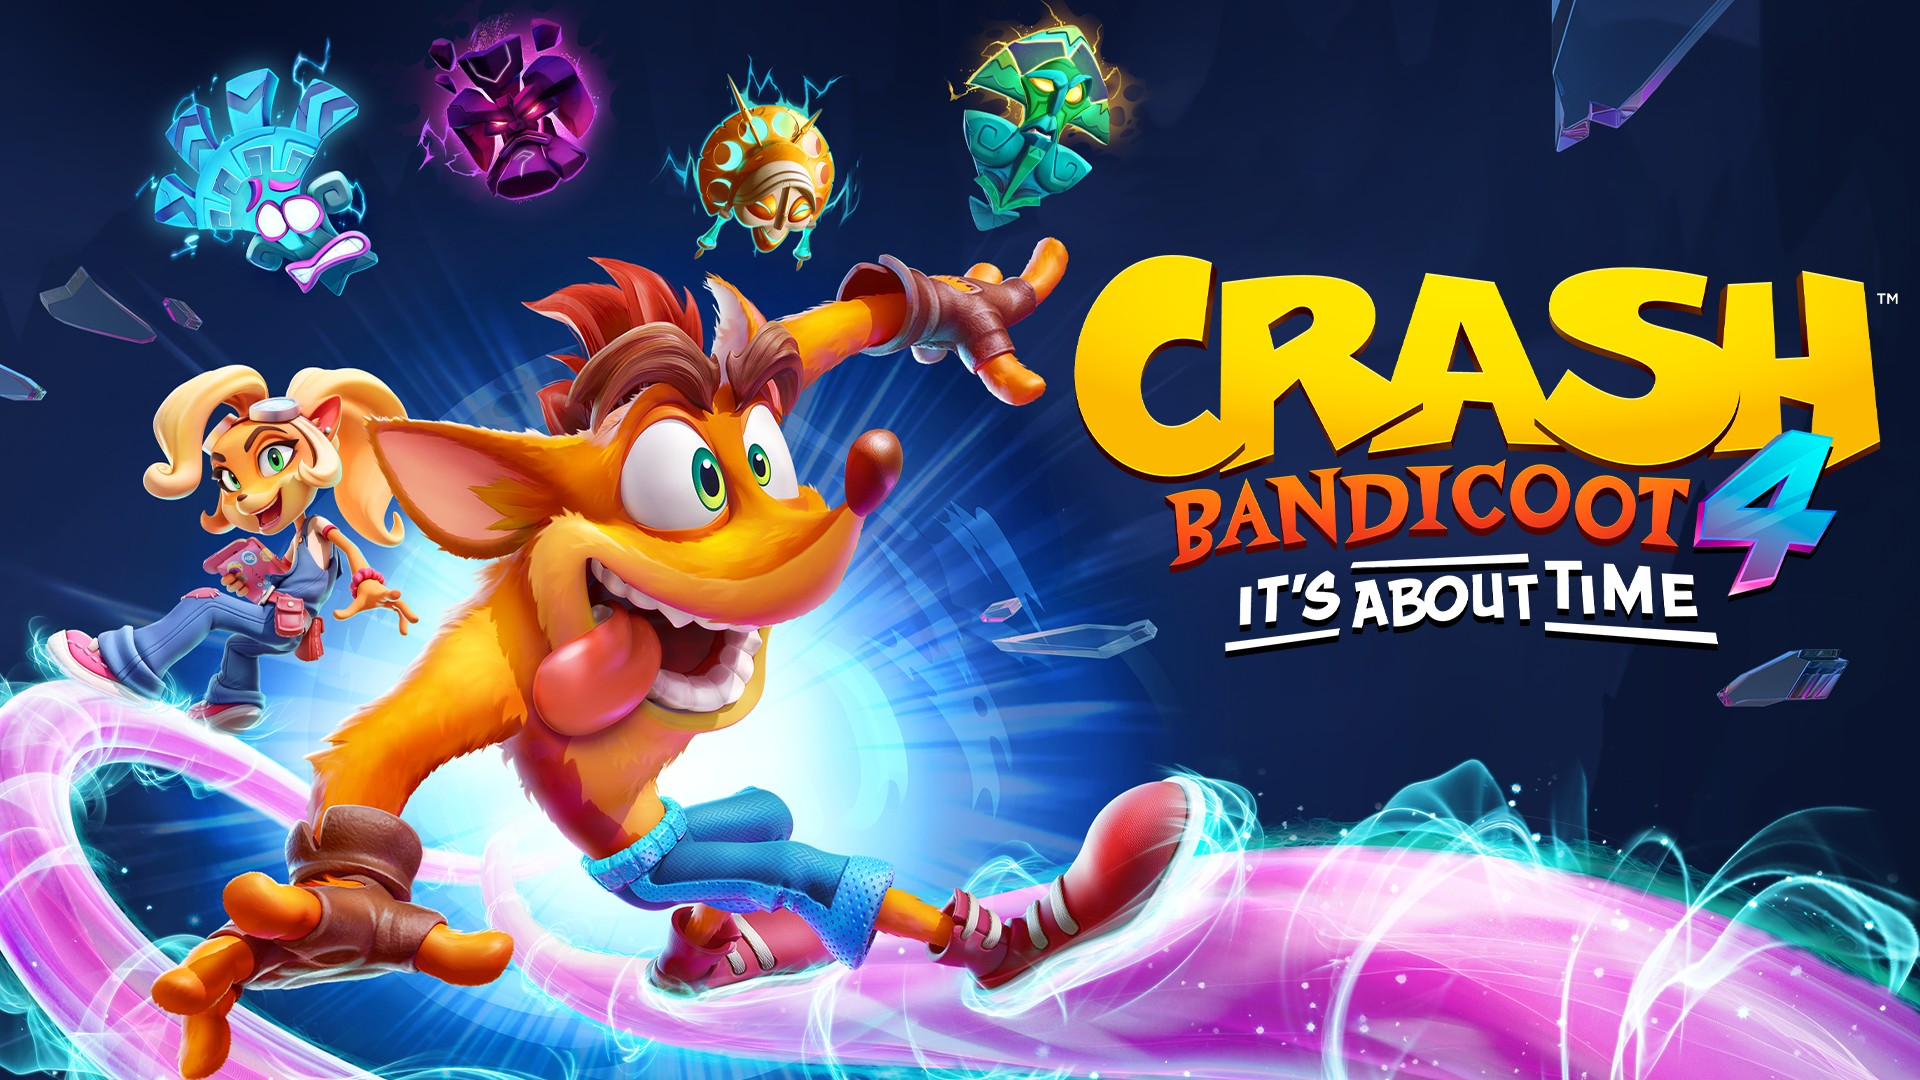 Crash Bandicoot 4: It's About Time… Fur a New Crash Bandicoot Game - Xbox  Wire